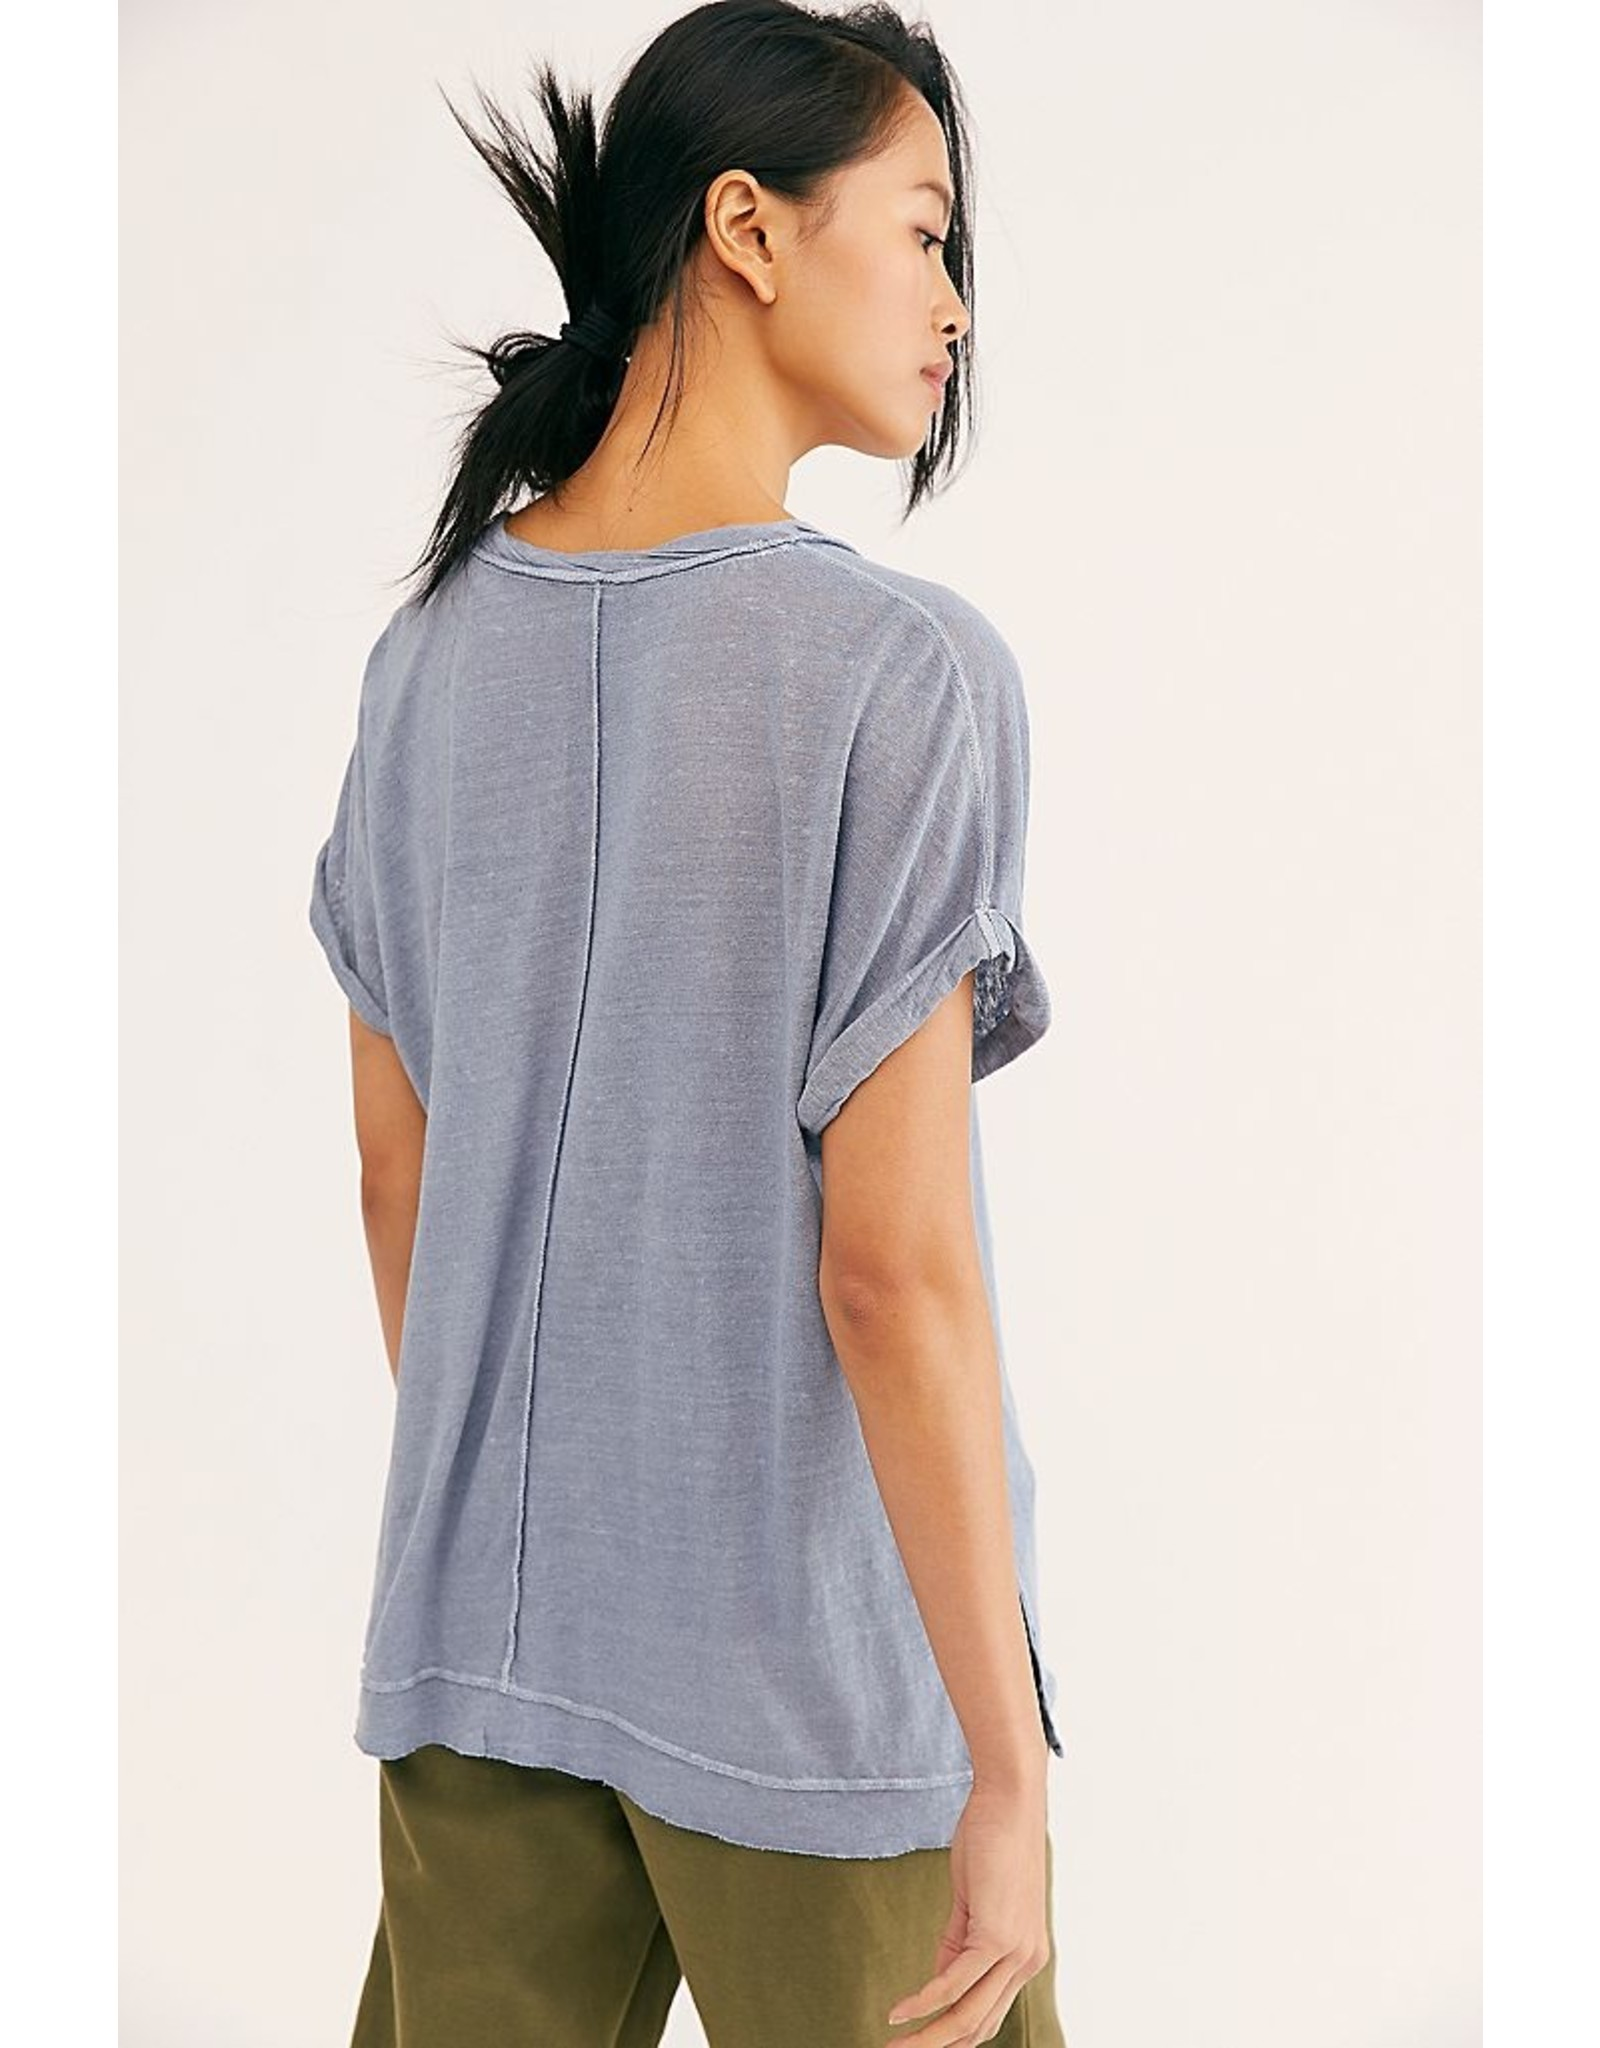 Free People Under the Sun Top